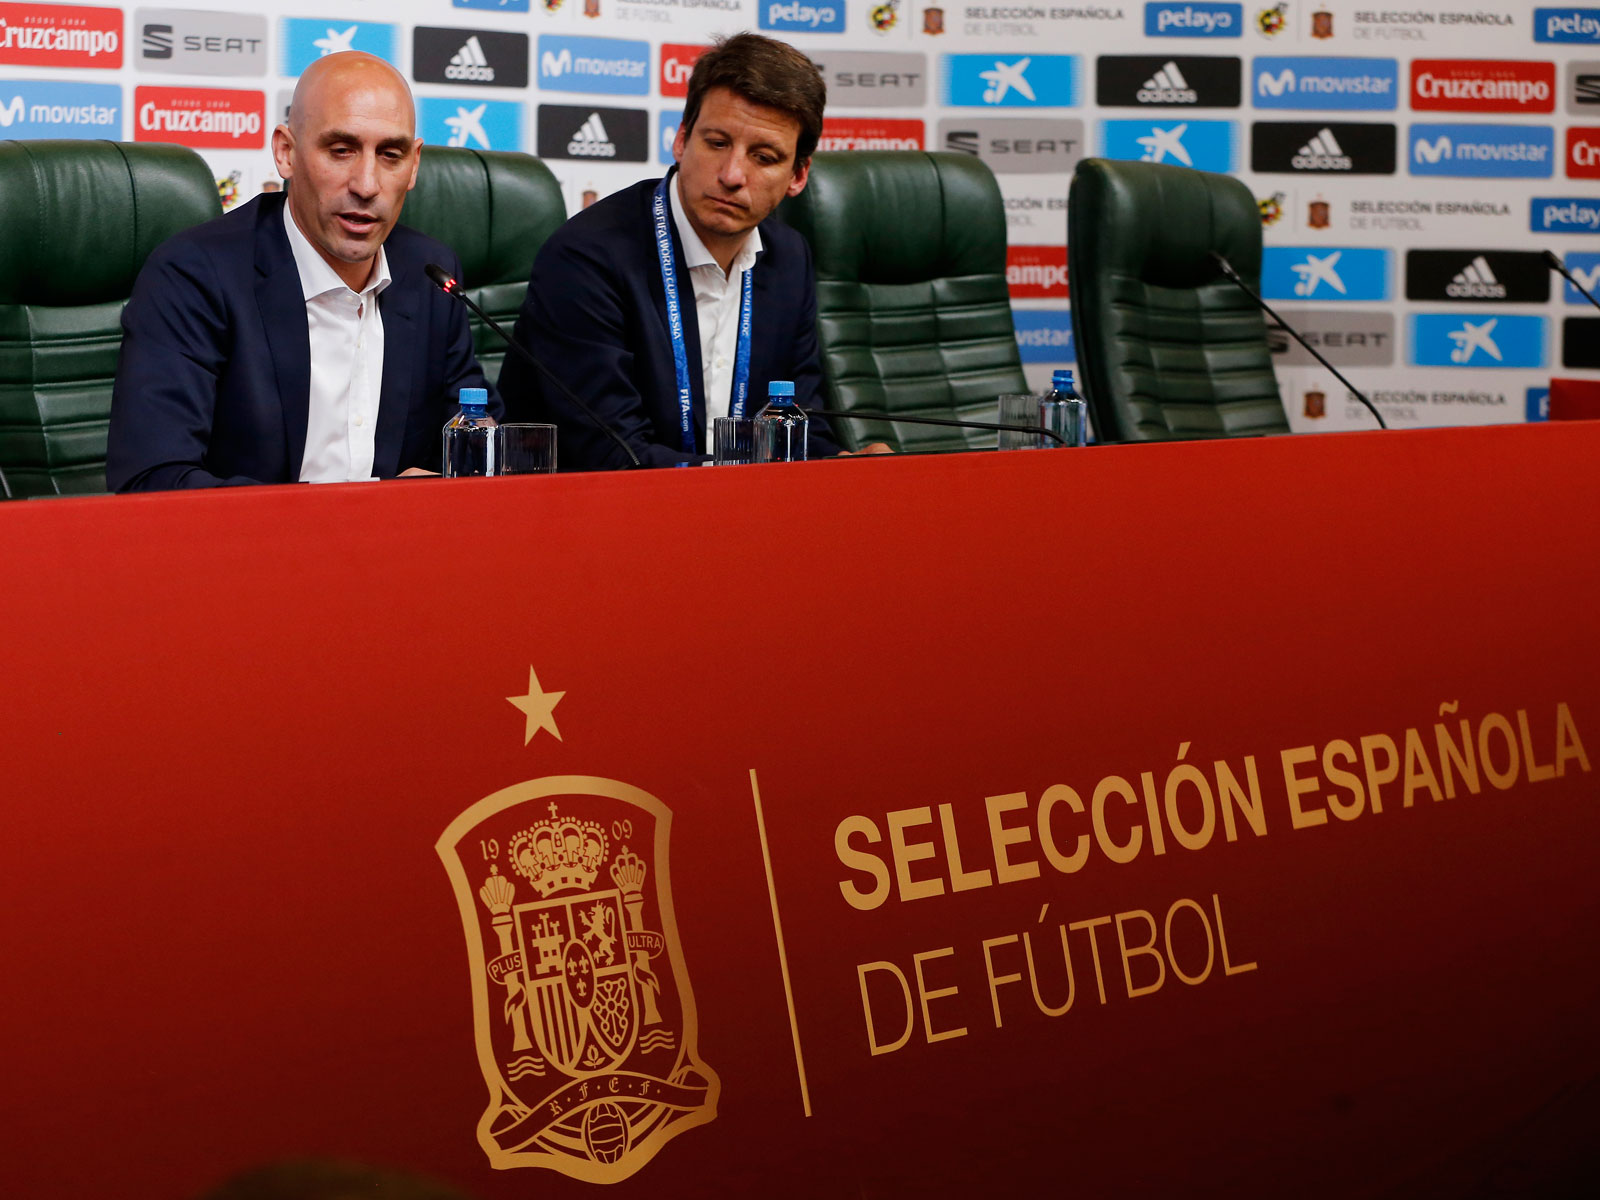 Spain's FA president fired manager Julen Lopetegui just before the World Cup